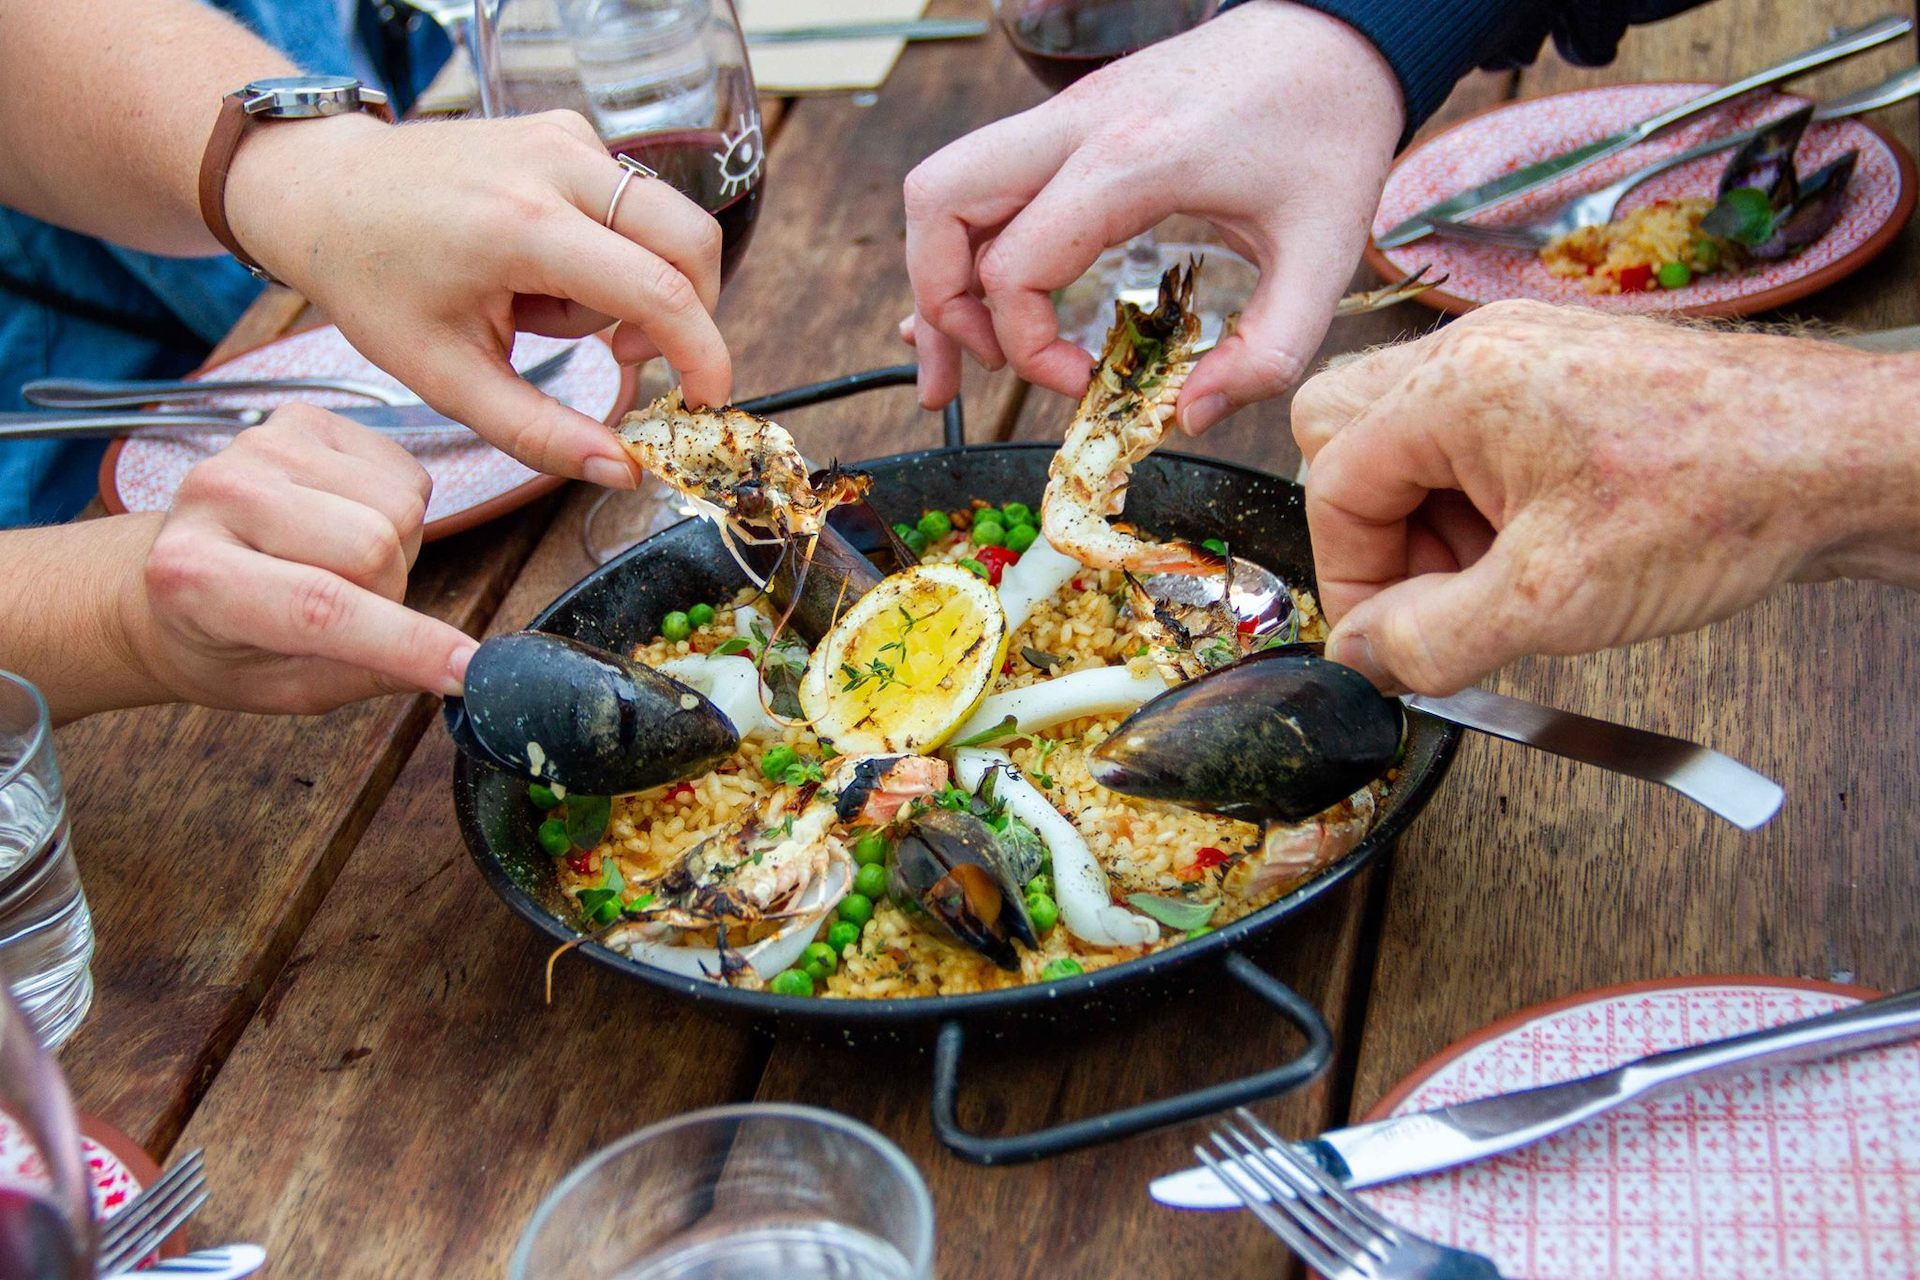 people digging into a paella